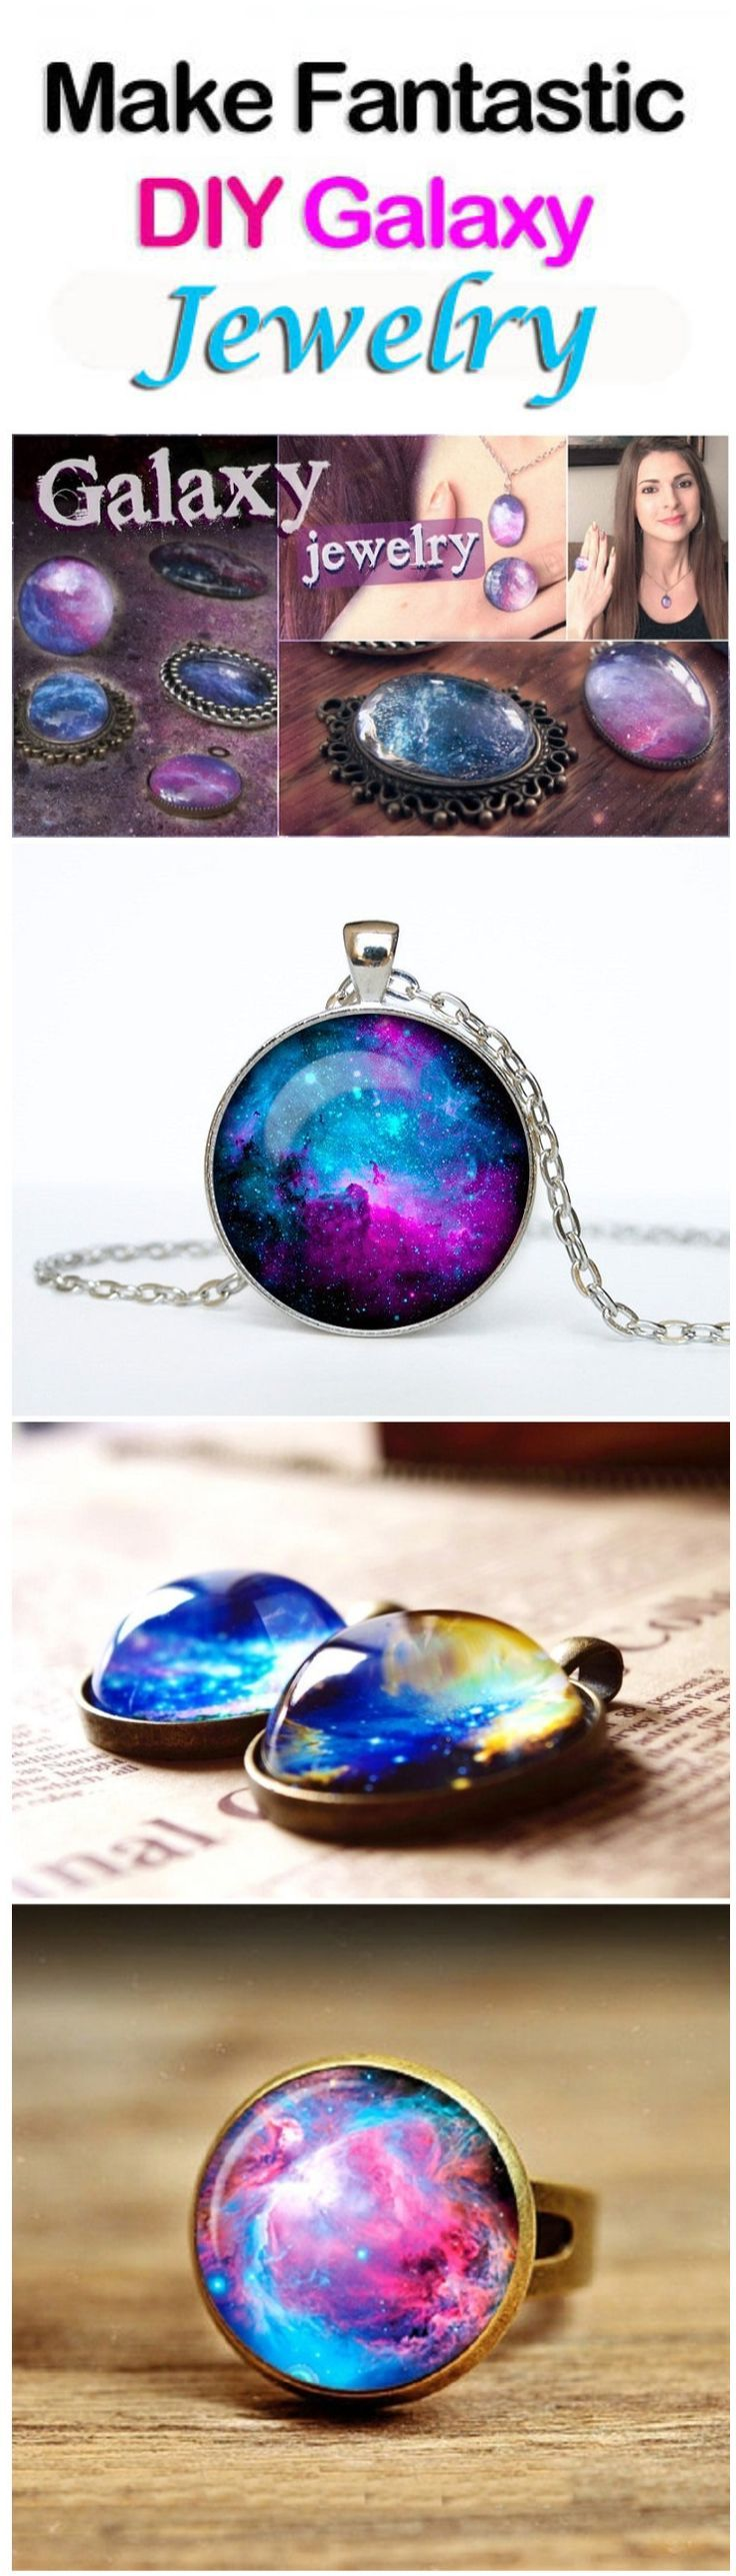 diy nebula jewelry - photo #14